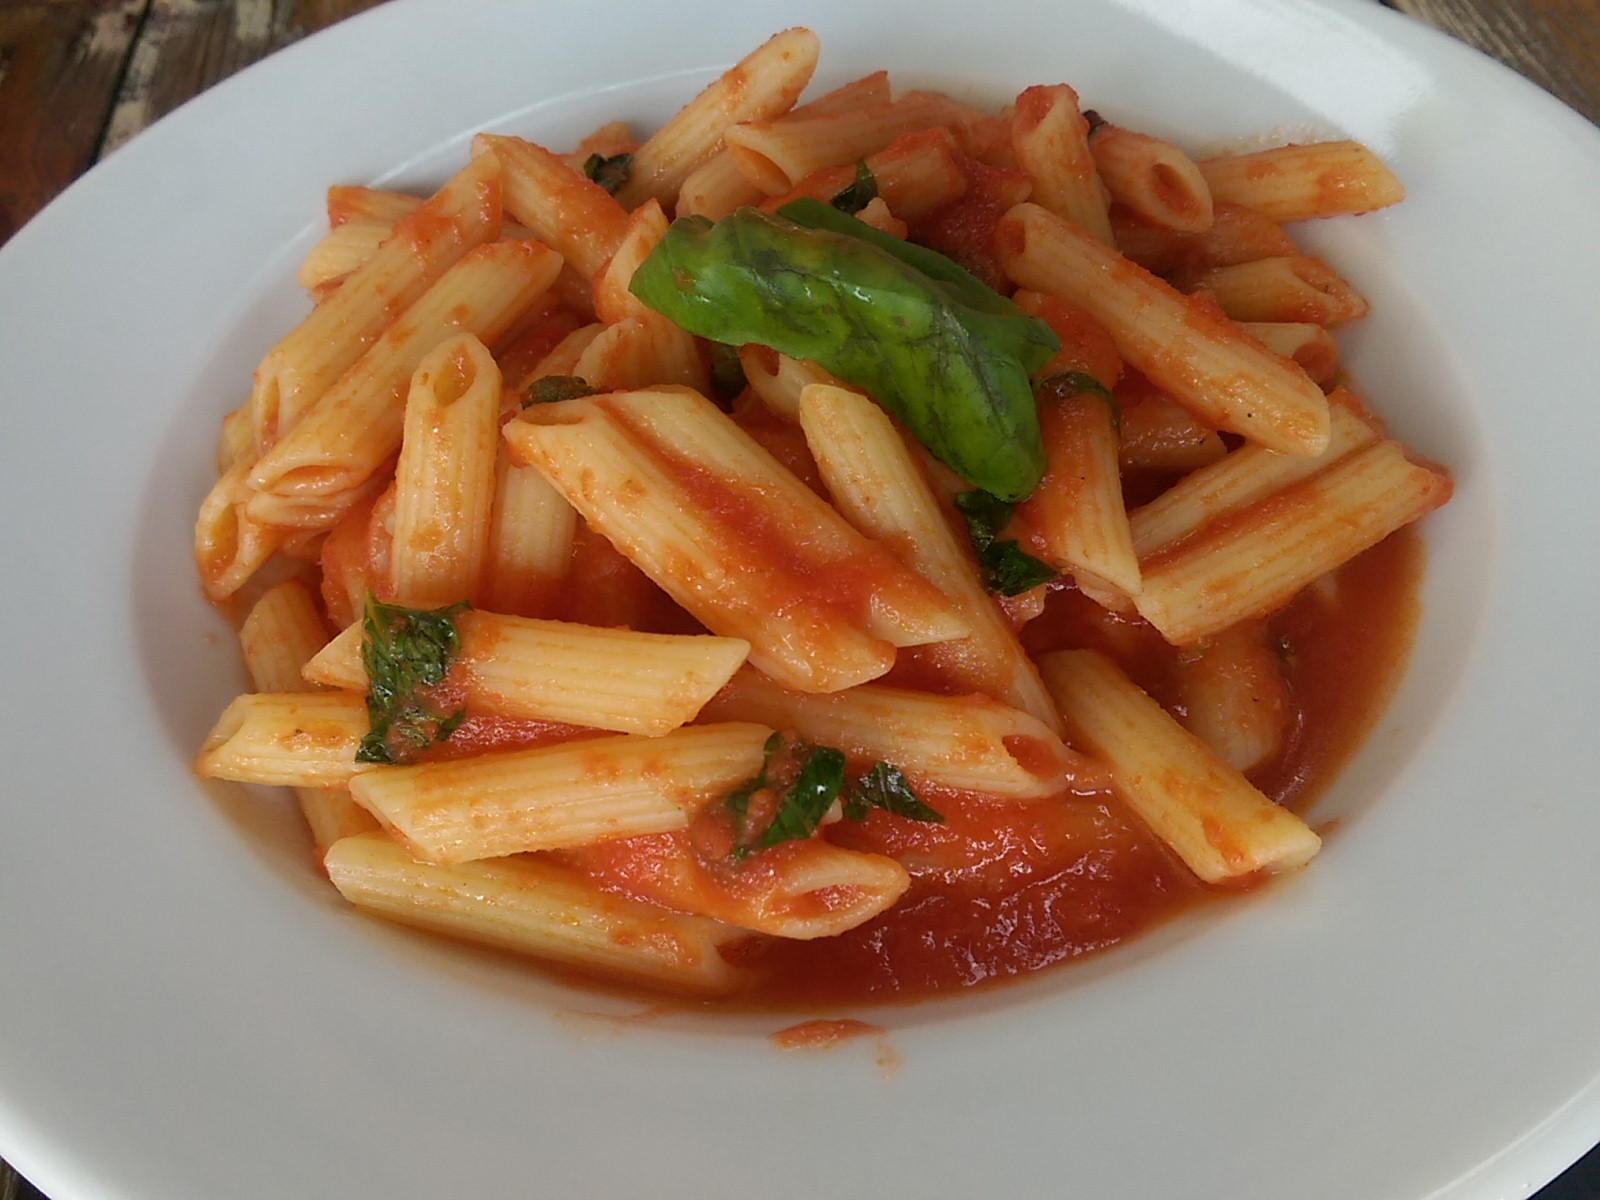 Penne pasta with tomato sauce and basil on top